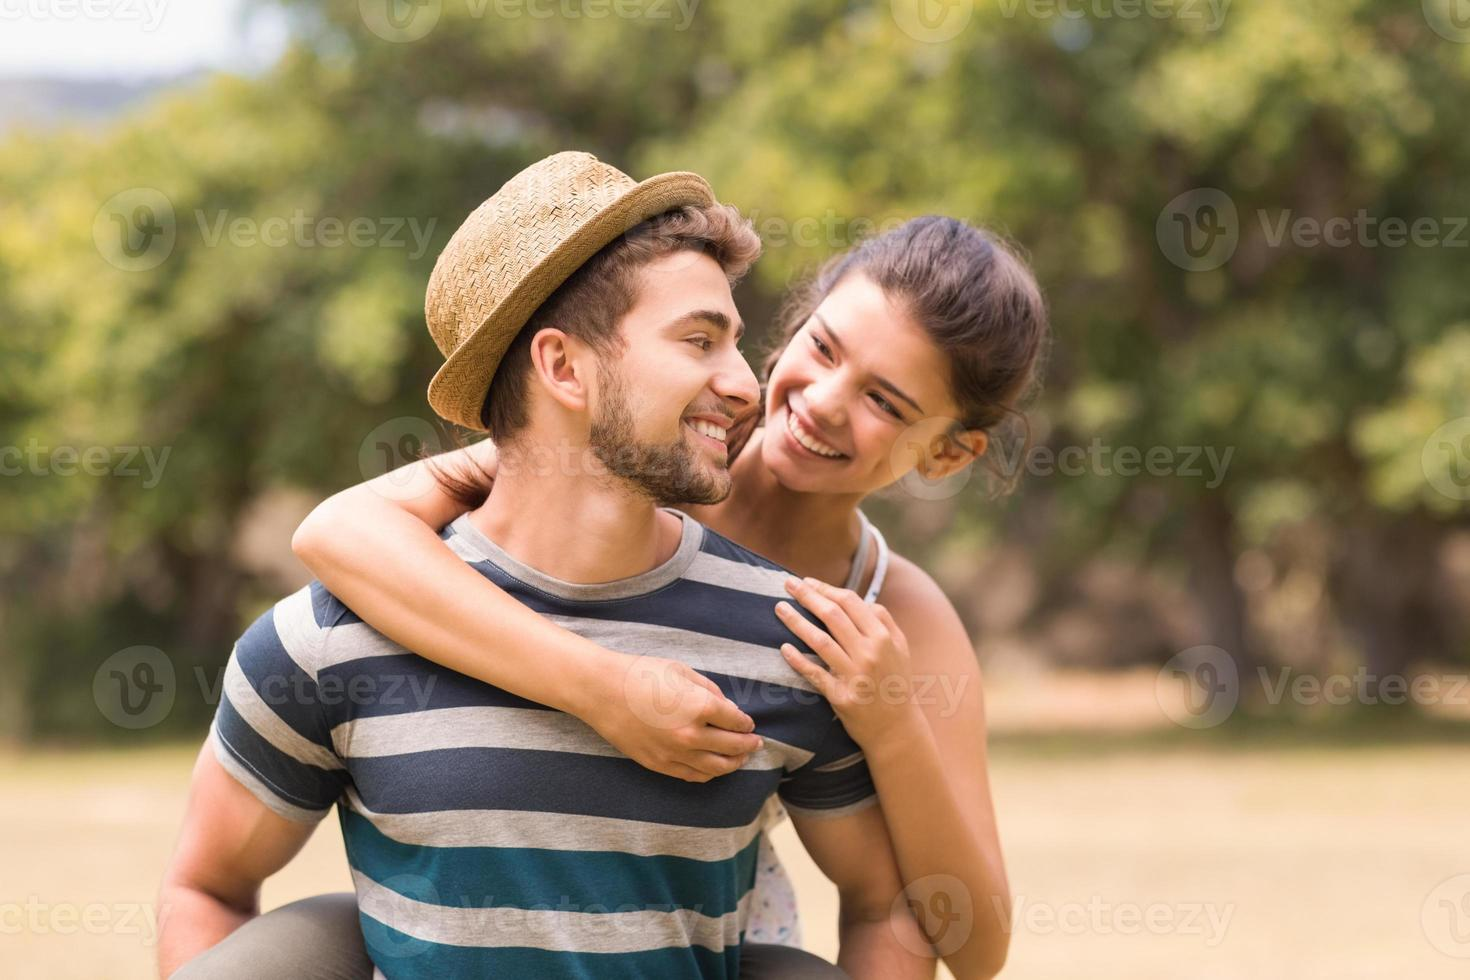 Cute couple in the park photo